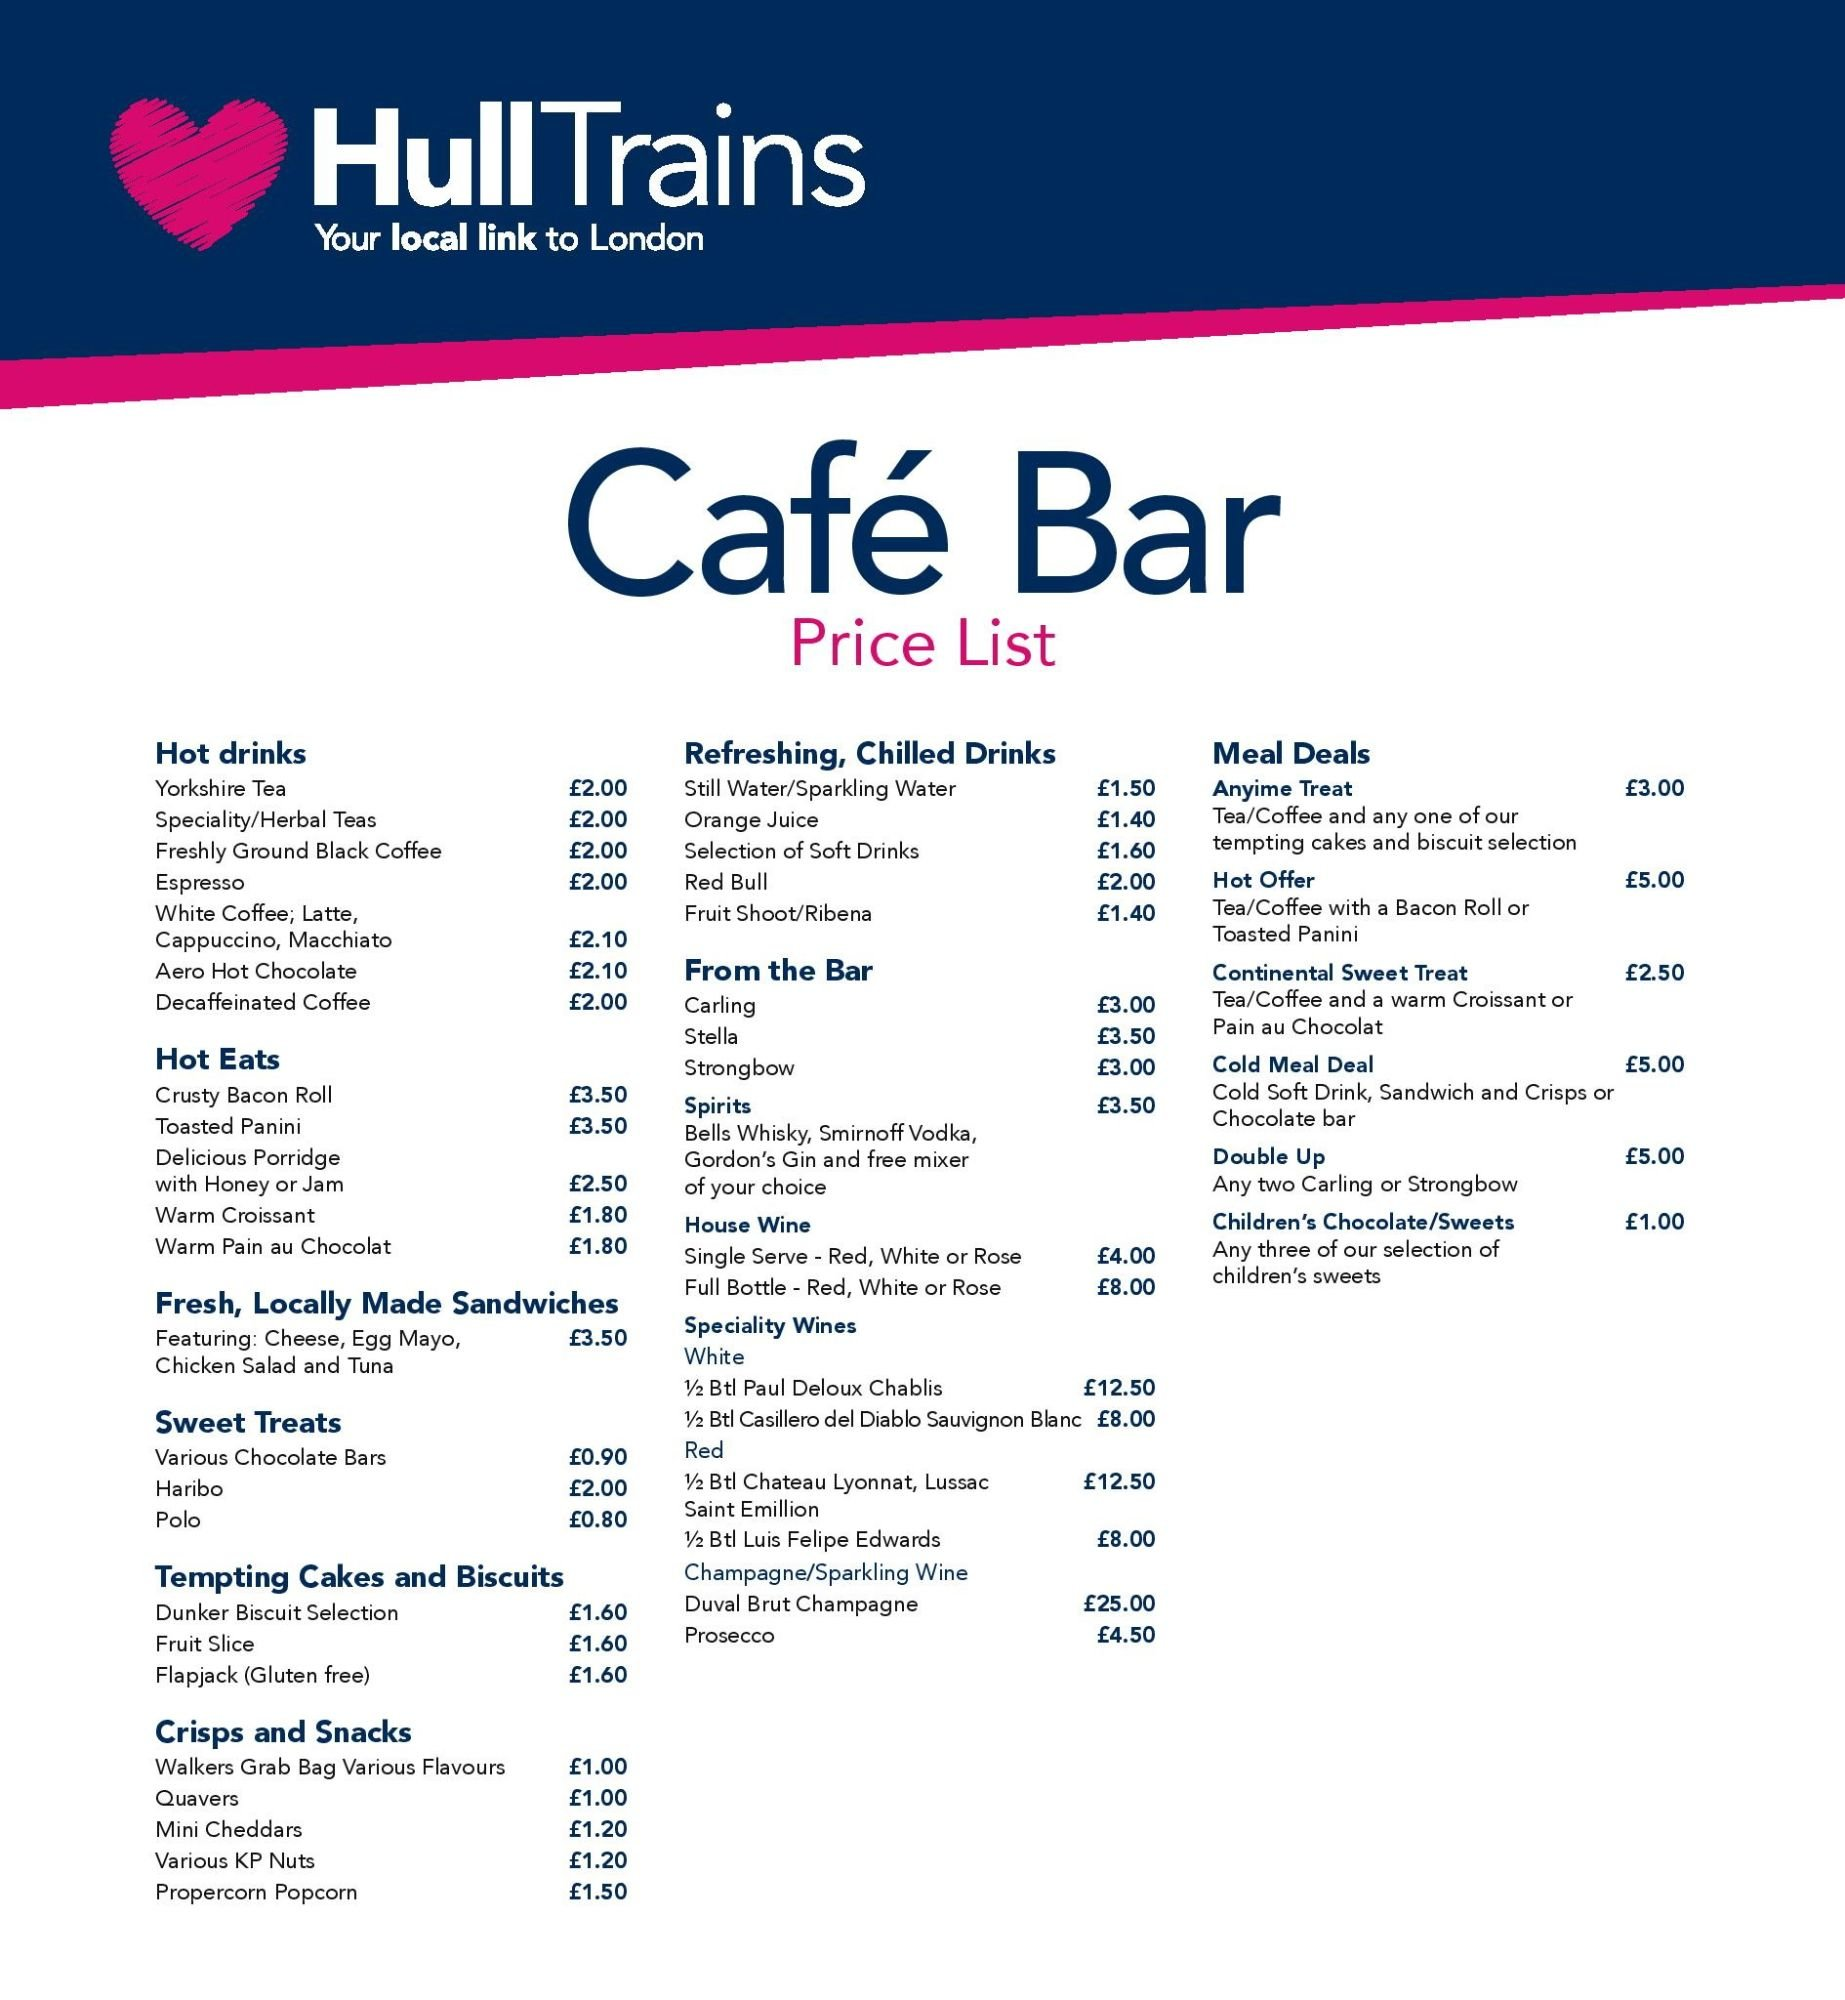 Image showing a sample of the First Hull Trains cafe bar menu circa 2016.